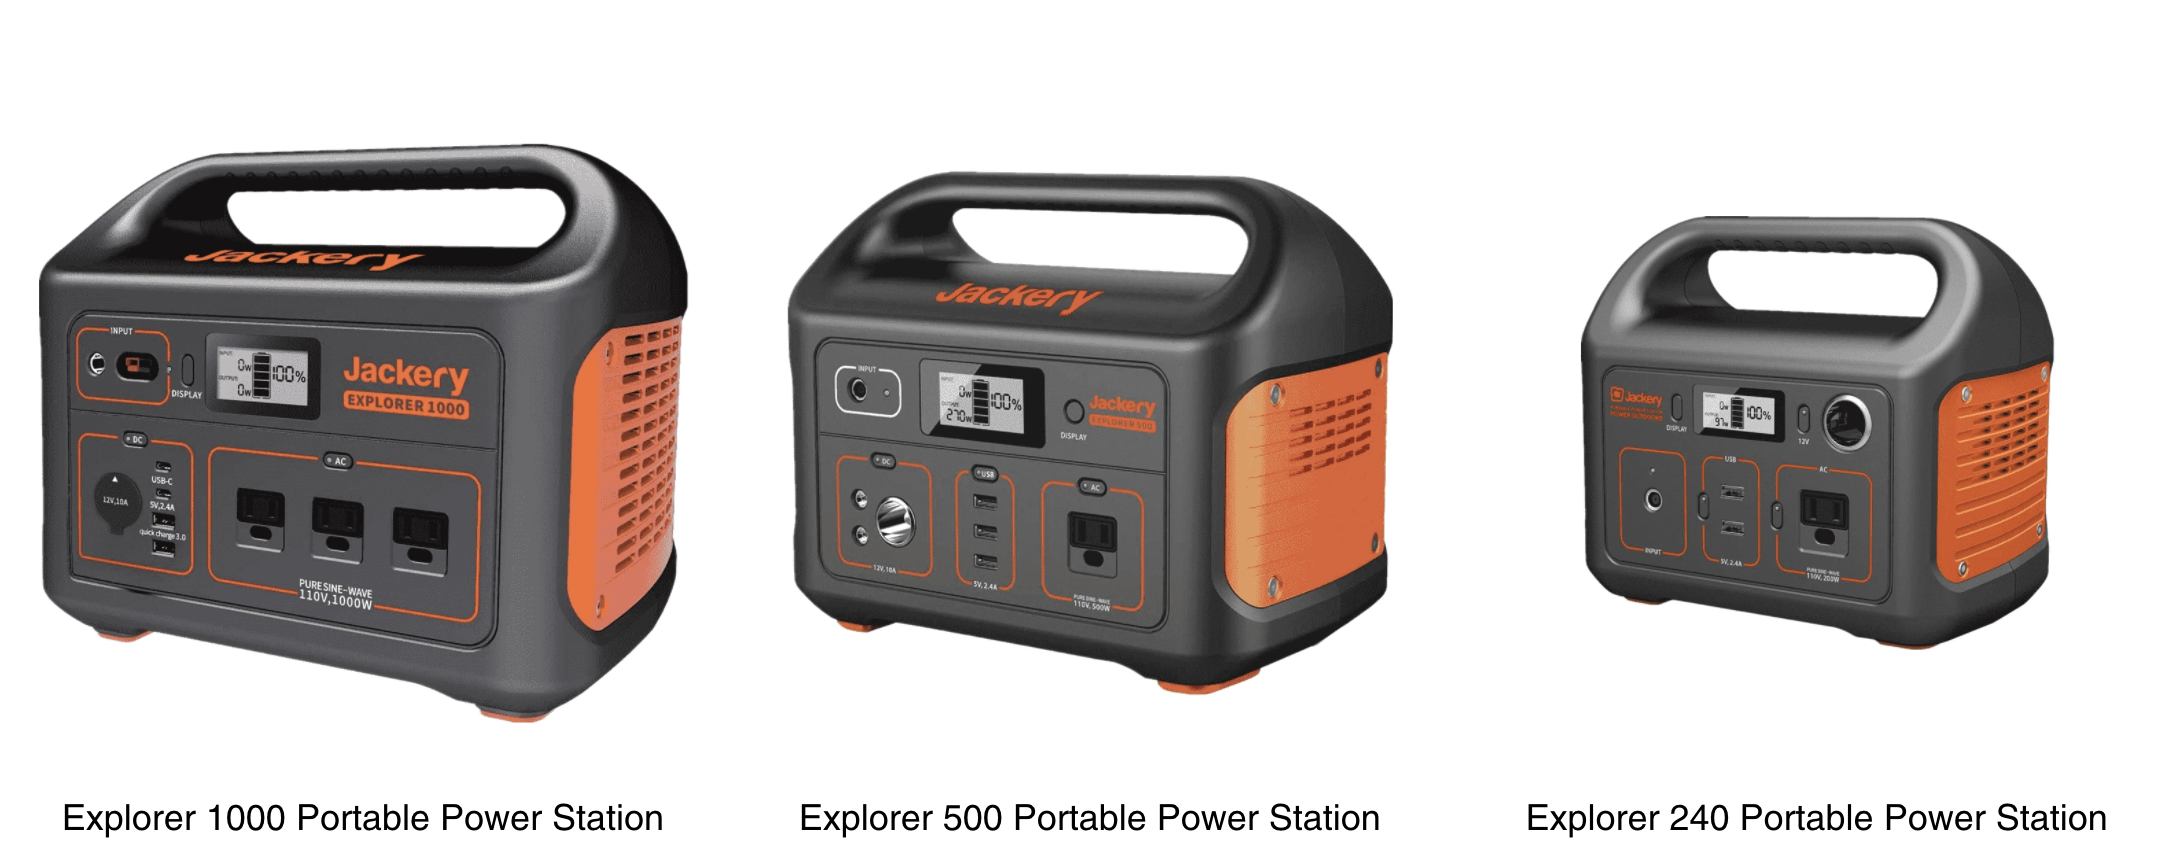 The Explorer Series of Portable Power Stations